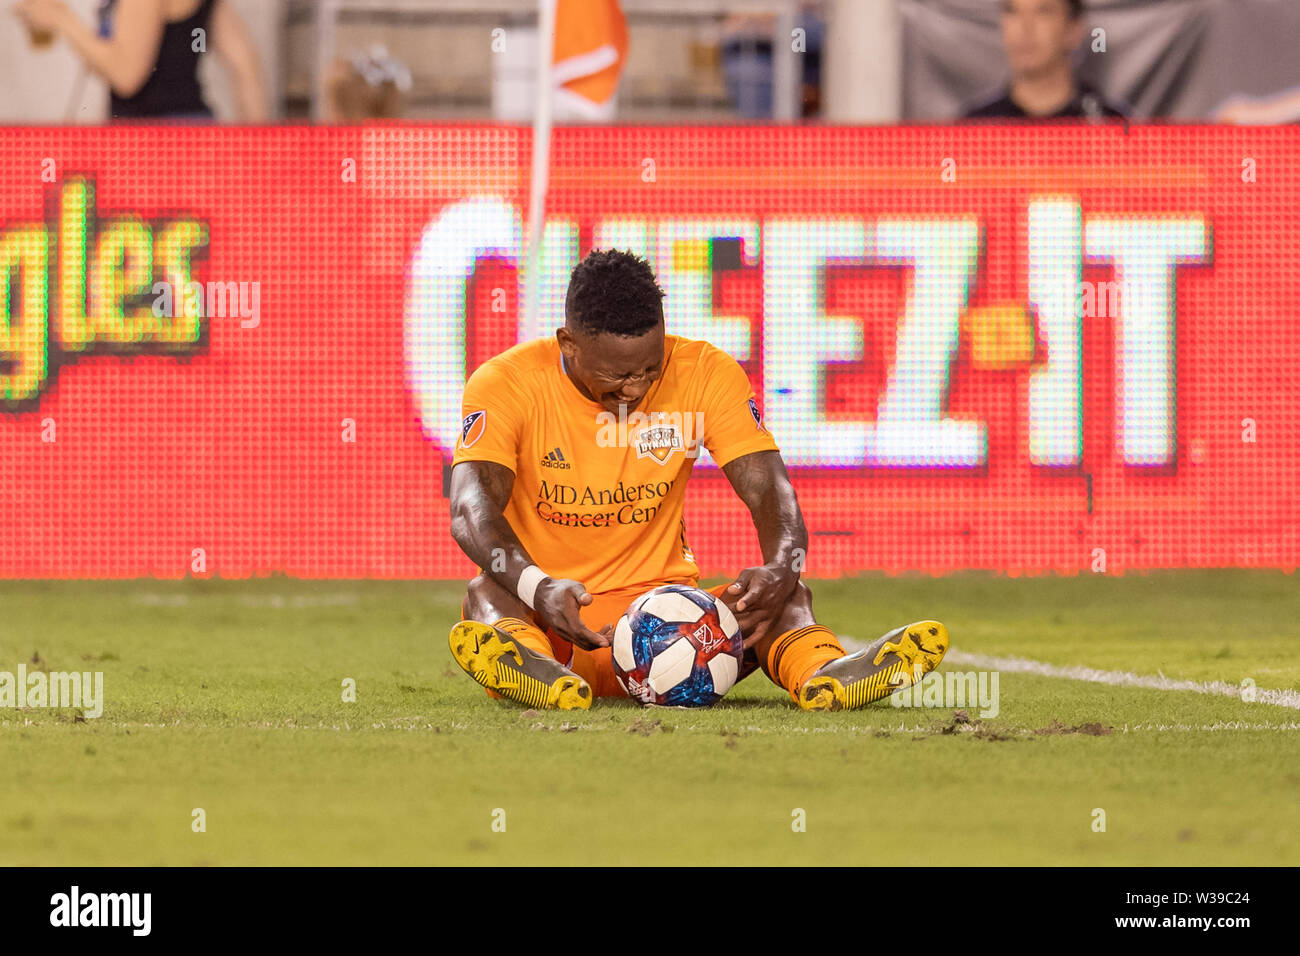 Houston, Texas, USA. 12th July, 2019. Houston Dynamo forward Romell Quioto (31) reacts during a match between Los Angeles FC and Houston Dynamo at BBVA Stadium in Houston, Texas. The final LAFC wins 3-1. Maria Lysaker/CSM/Alamy Live News - Stock Image